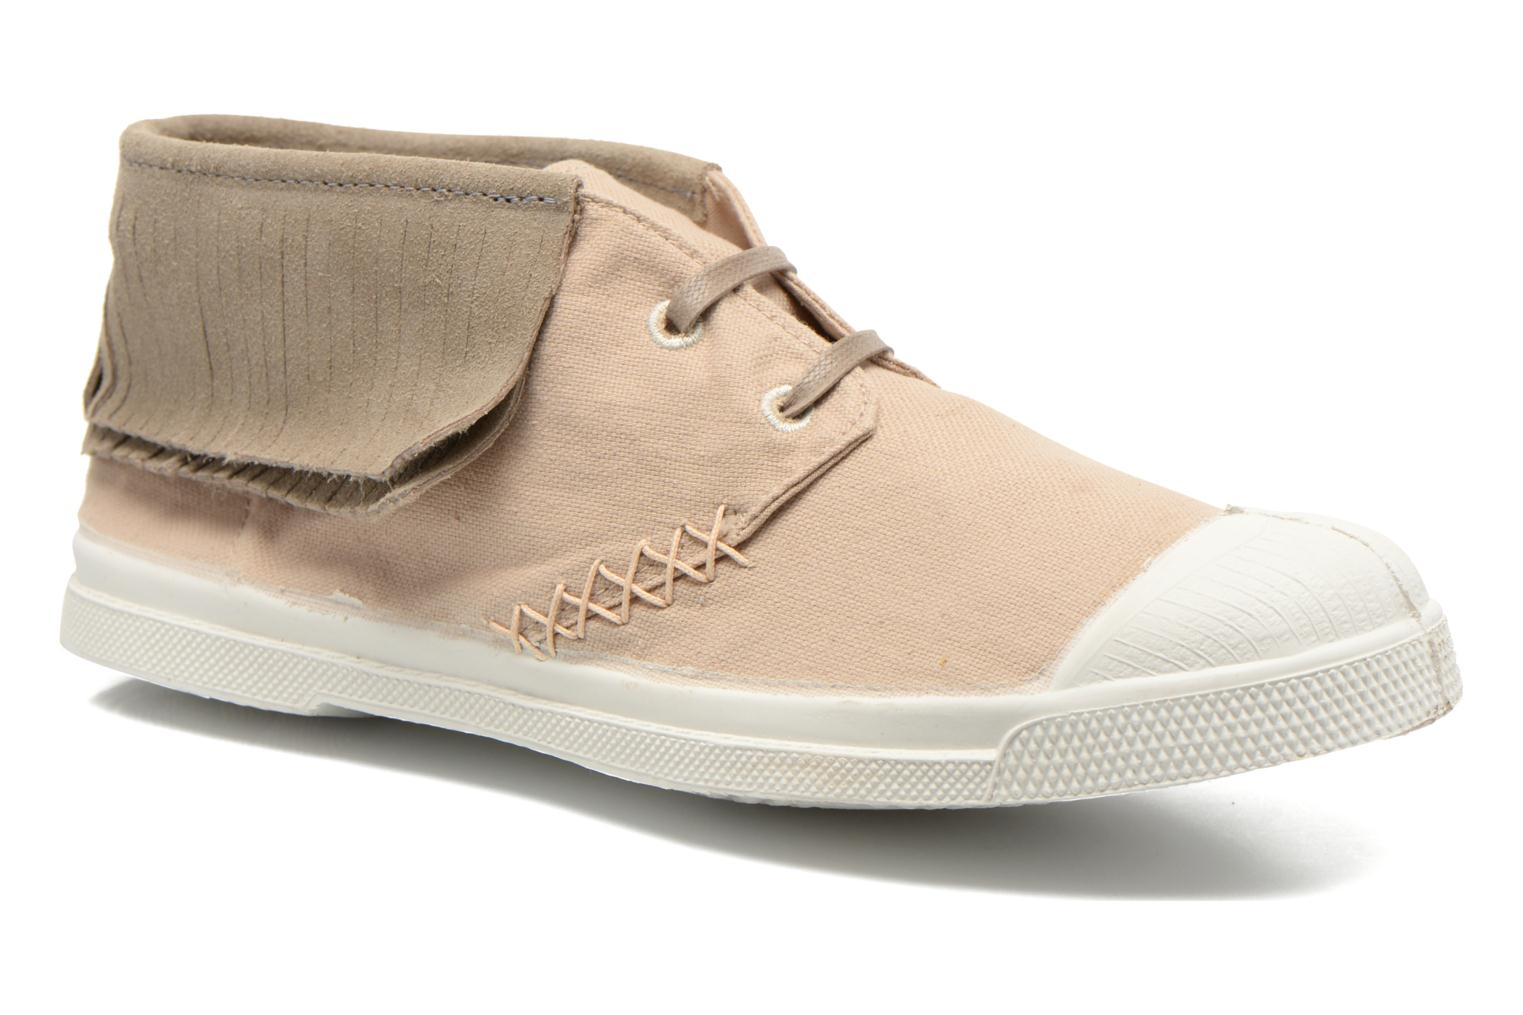 Marques Chaussure femme Bensimon femme Tennis Indian Fringes Beige